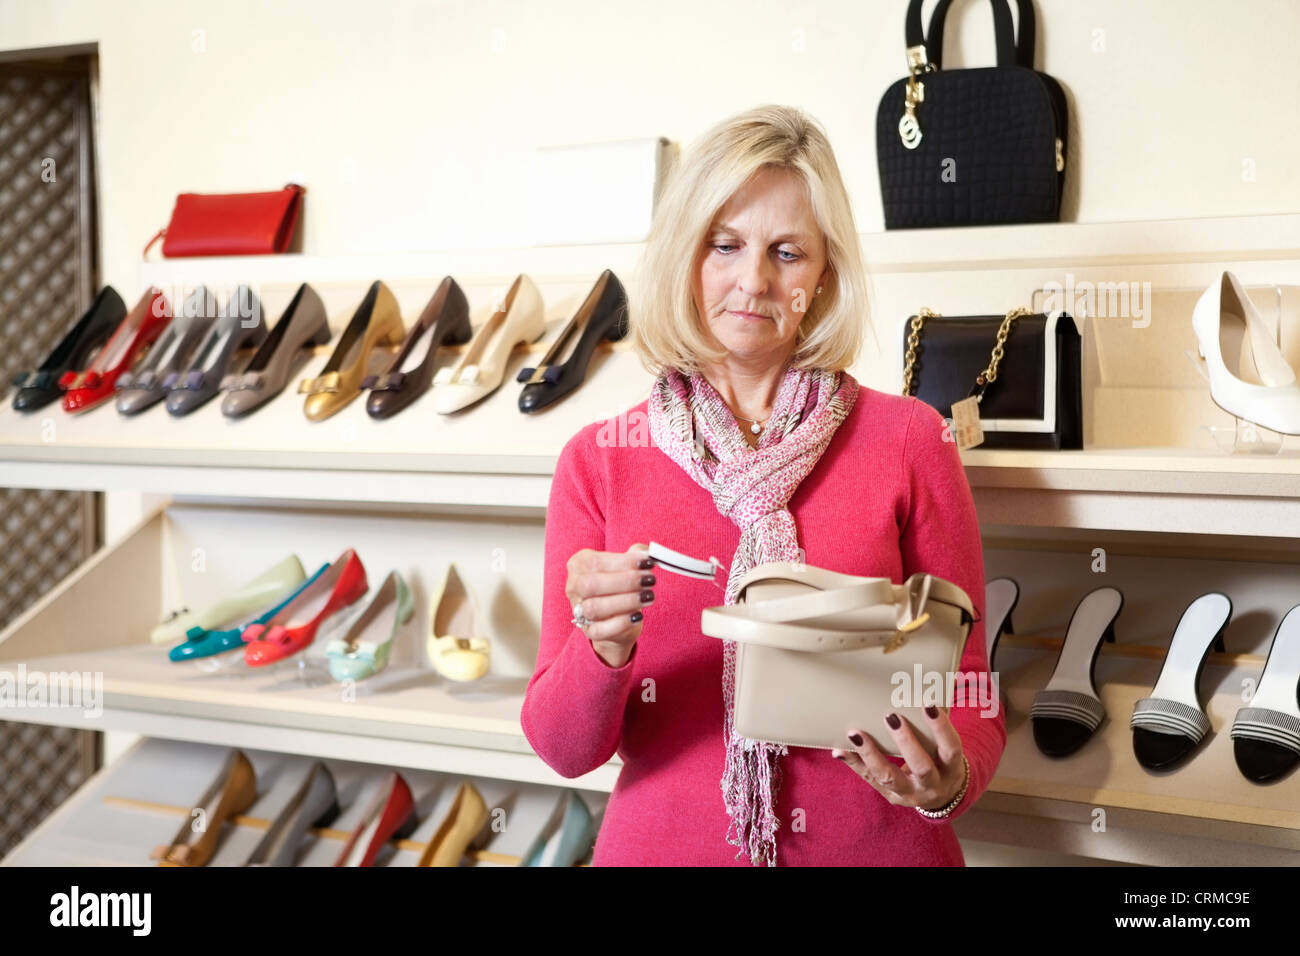 Mature woman looking at price tag of purse in store - Stock Image